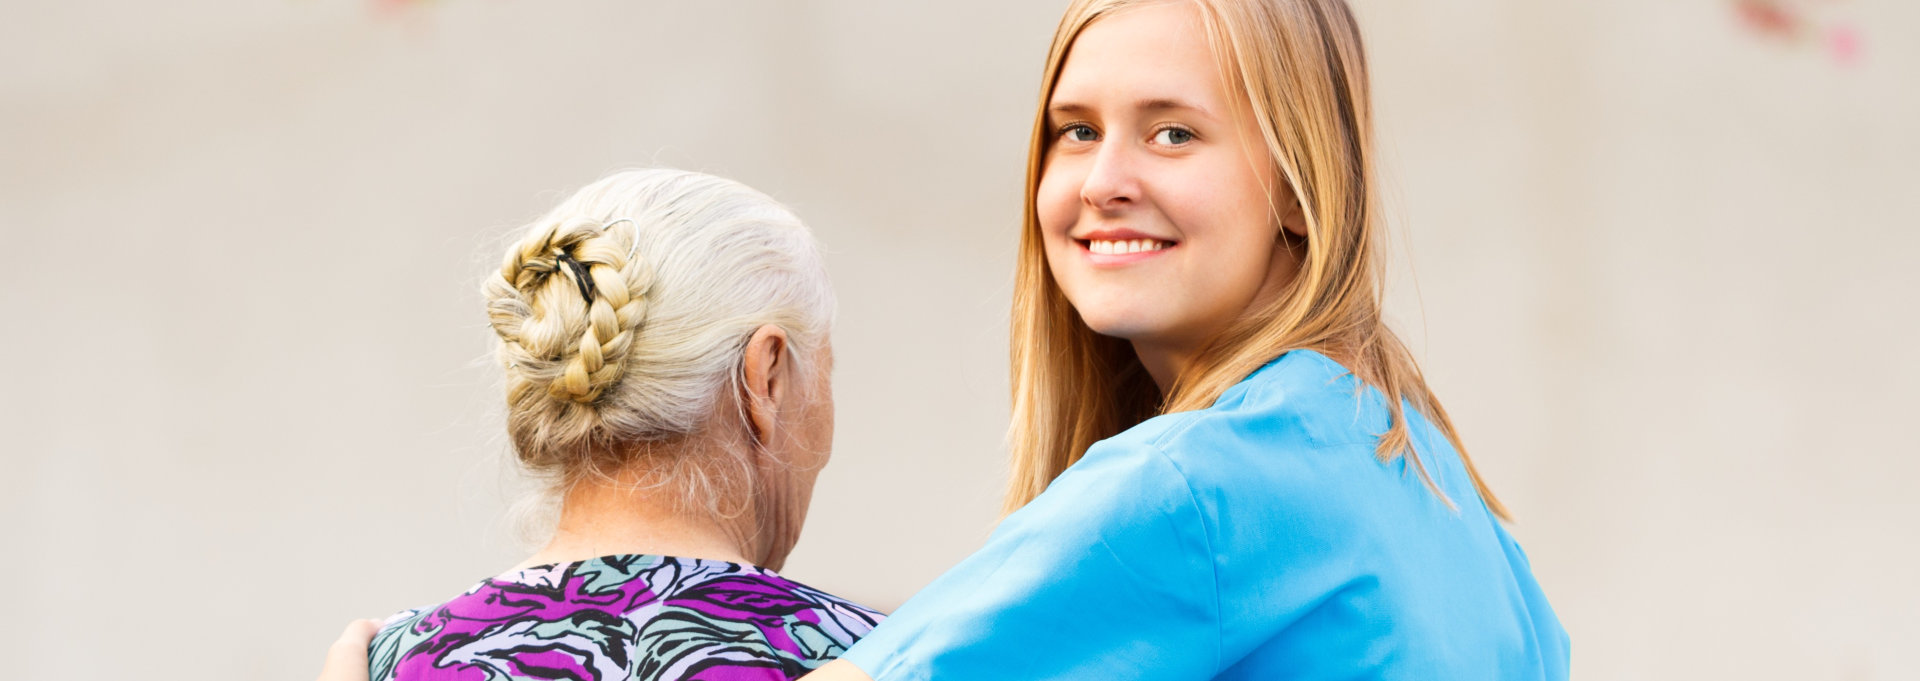 caregiver smiling with an elderly woman beside her